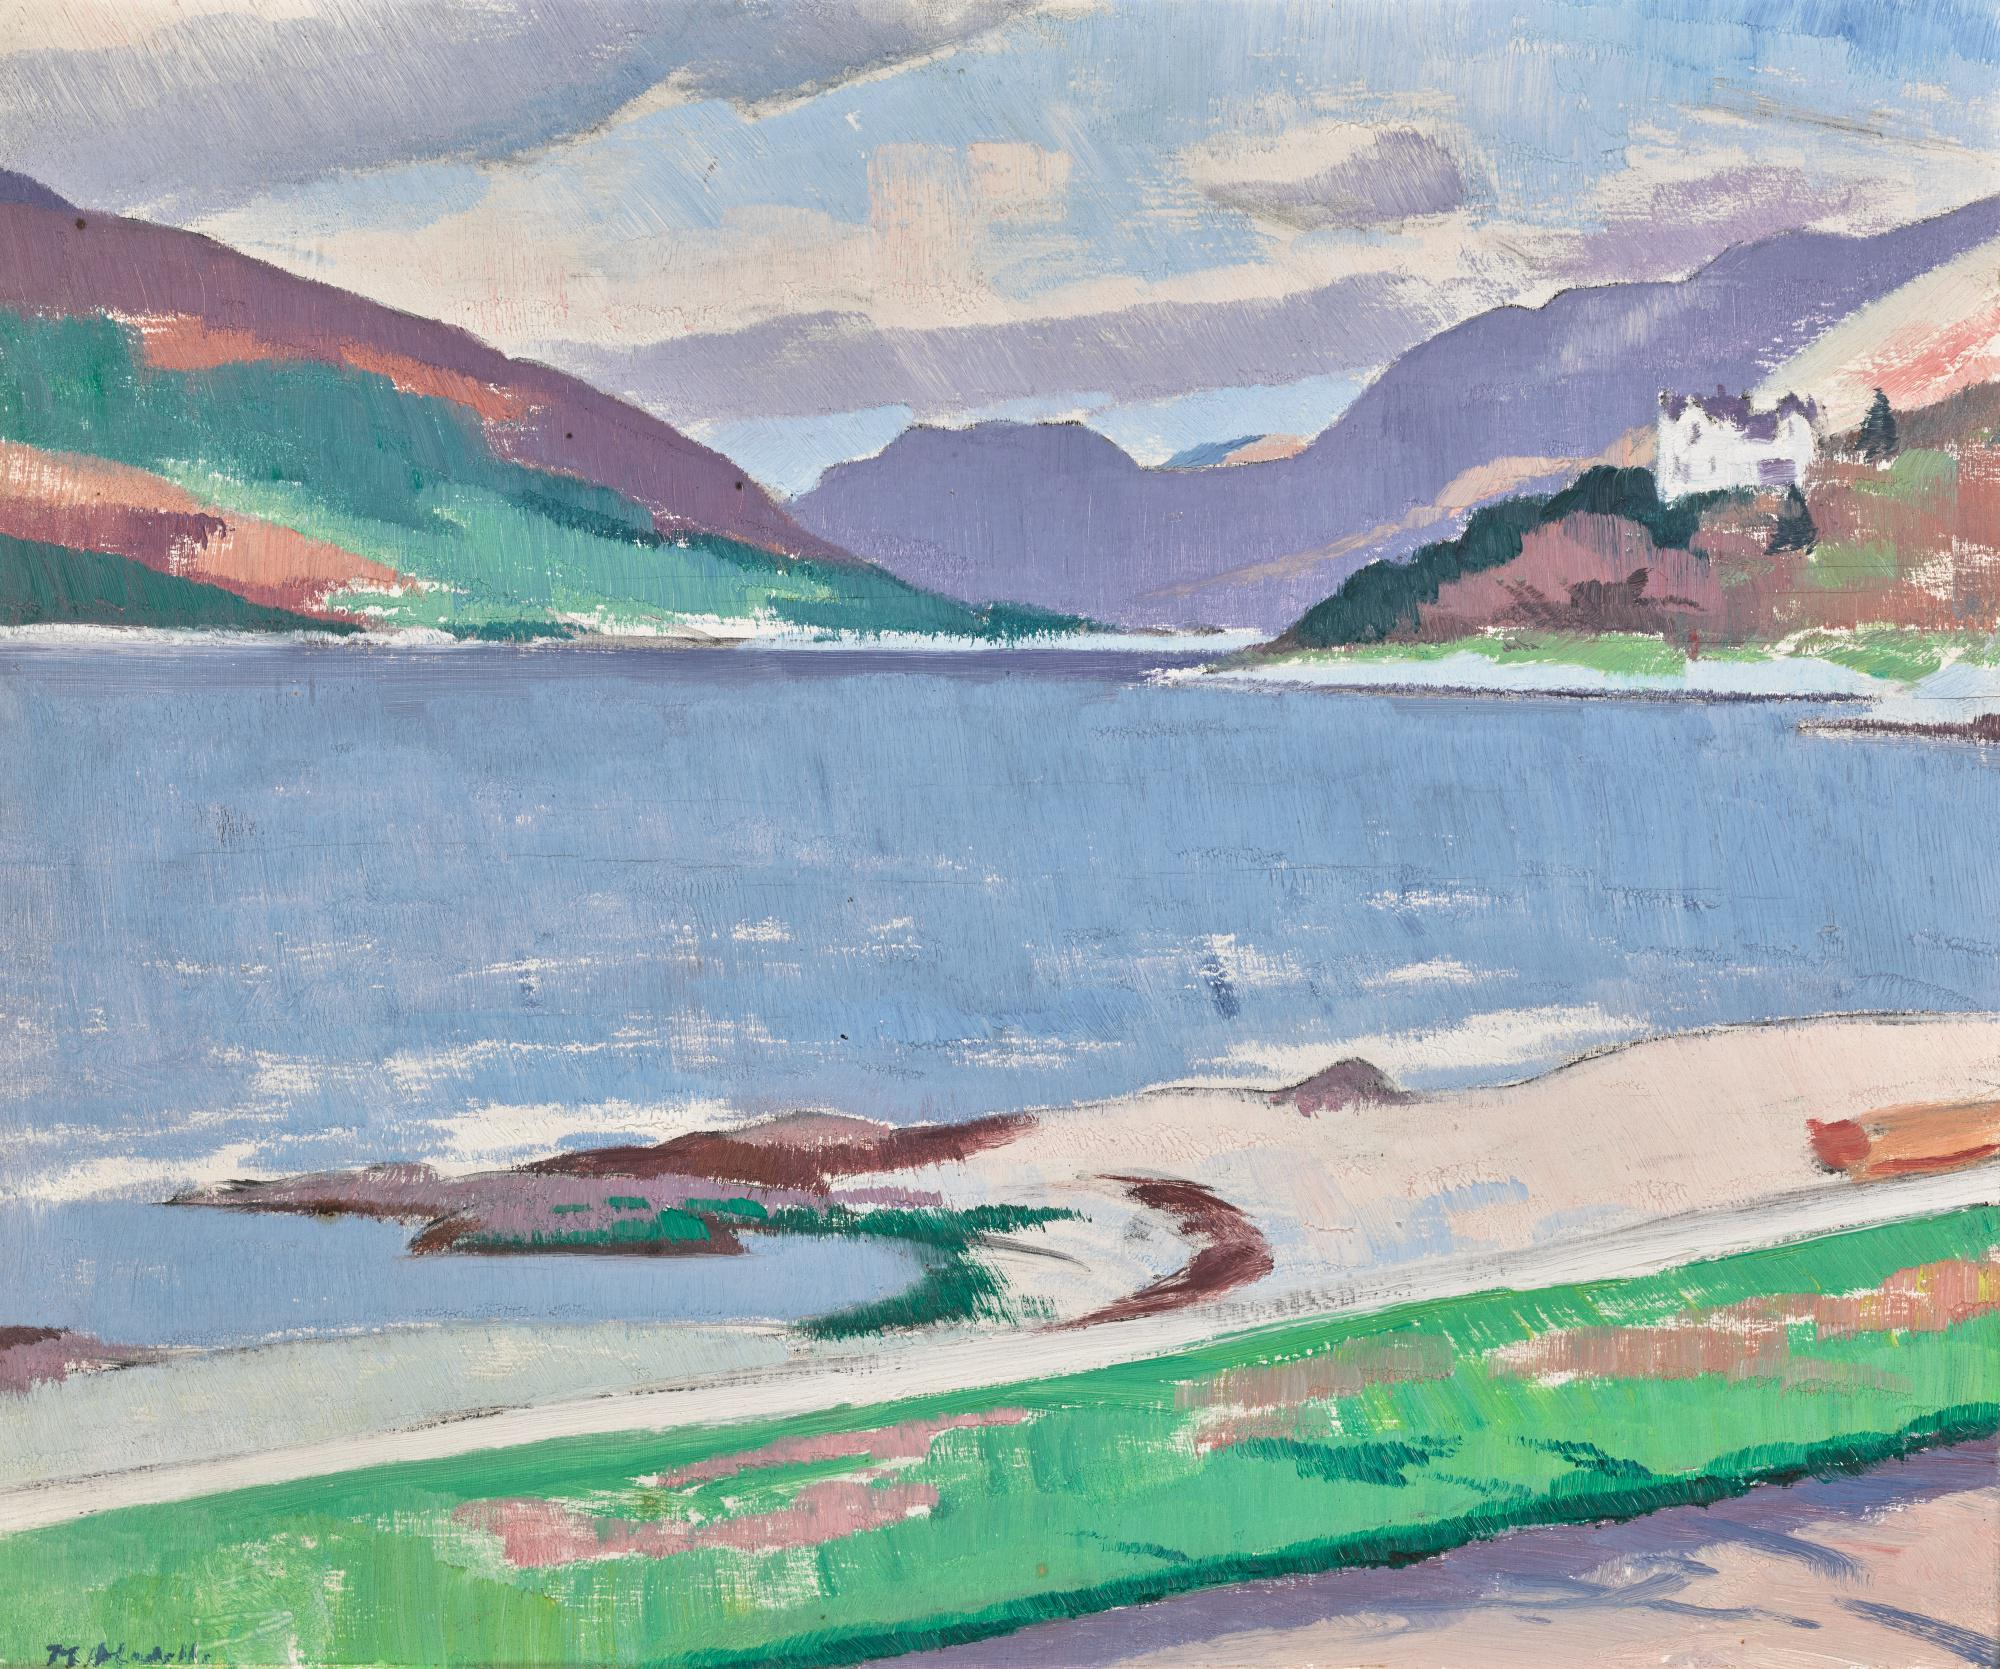 FRANCIS CAMPBELL BOILEAU CADELL, R.S.A., R.S.W. | COVE, LOCH LONG